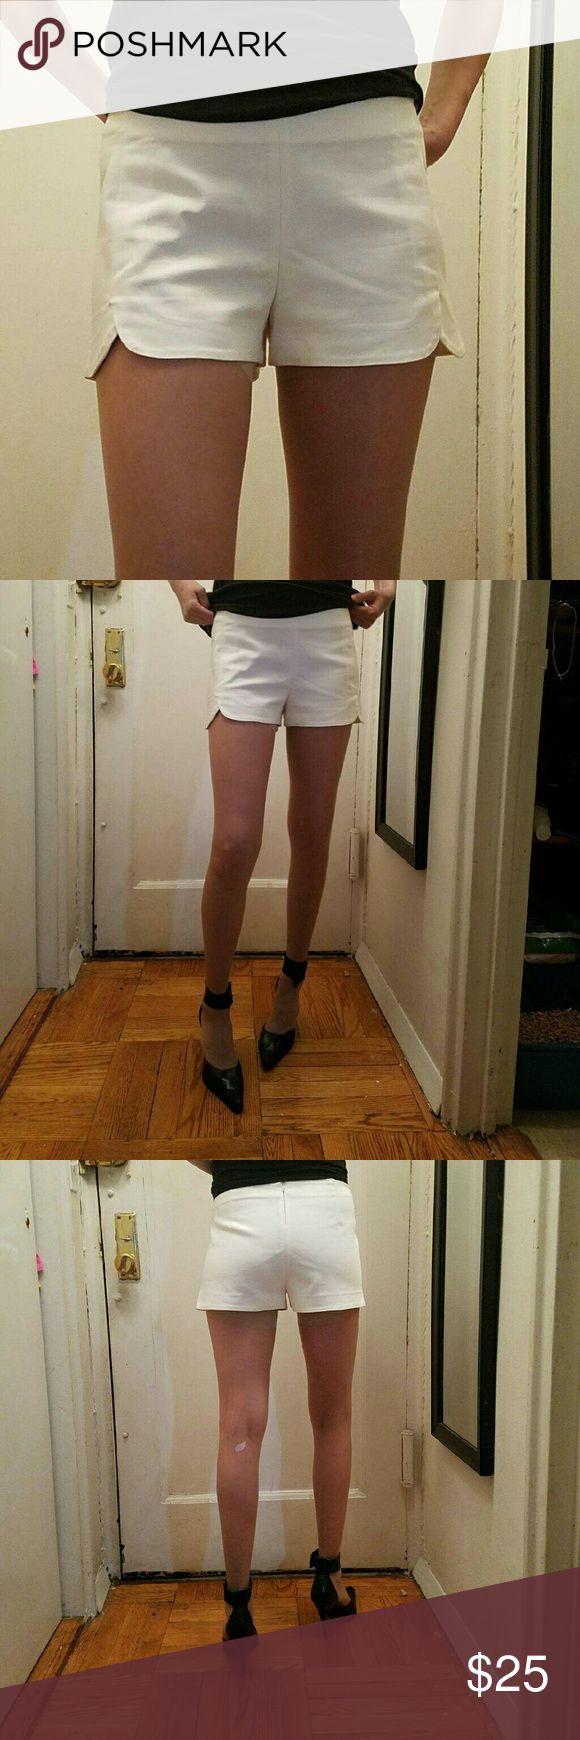 ZARA elegant shorts size S final price reduction!! Never worn but had them for while so decided best way to show what they look like it's to wear them for pict to post here snow white 49 %polyester 47 %cotton 4%elastine perfect for summer or night out just made final reduction of price  this is amazing deal Zara Shorts